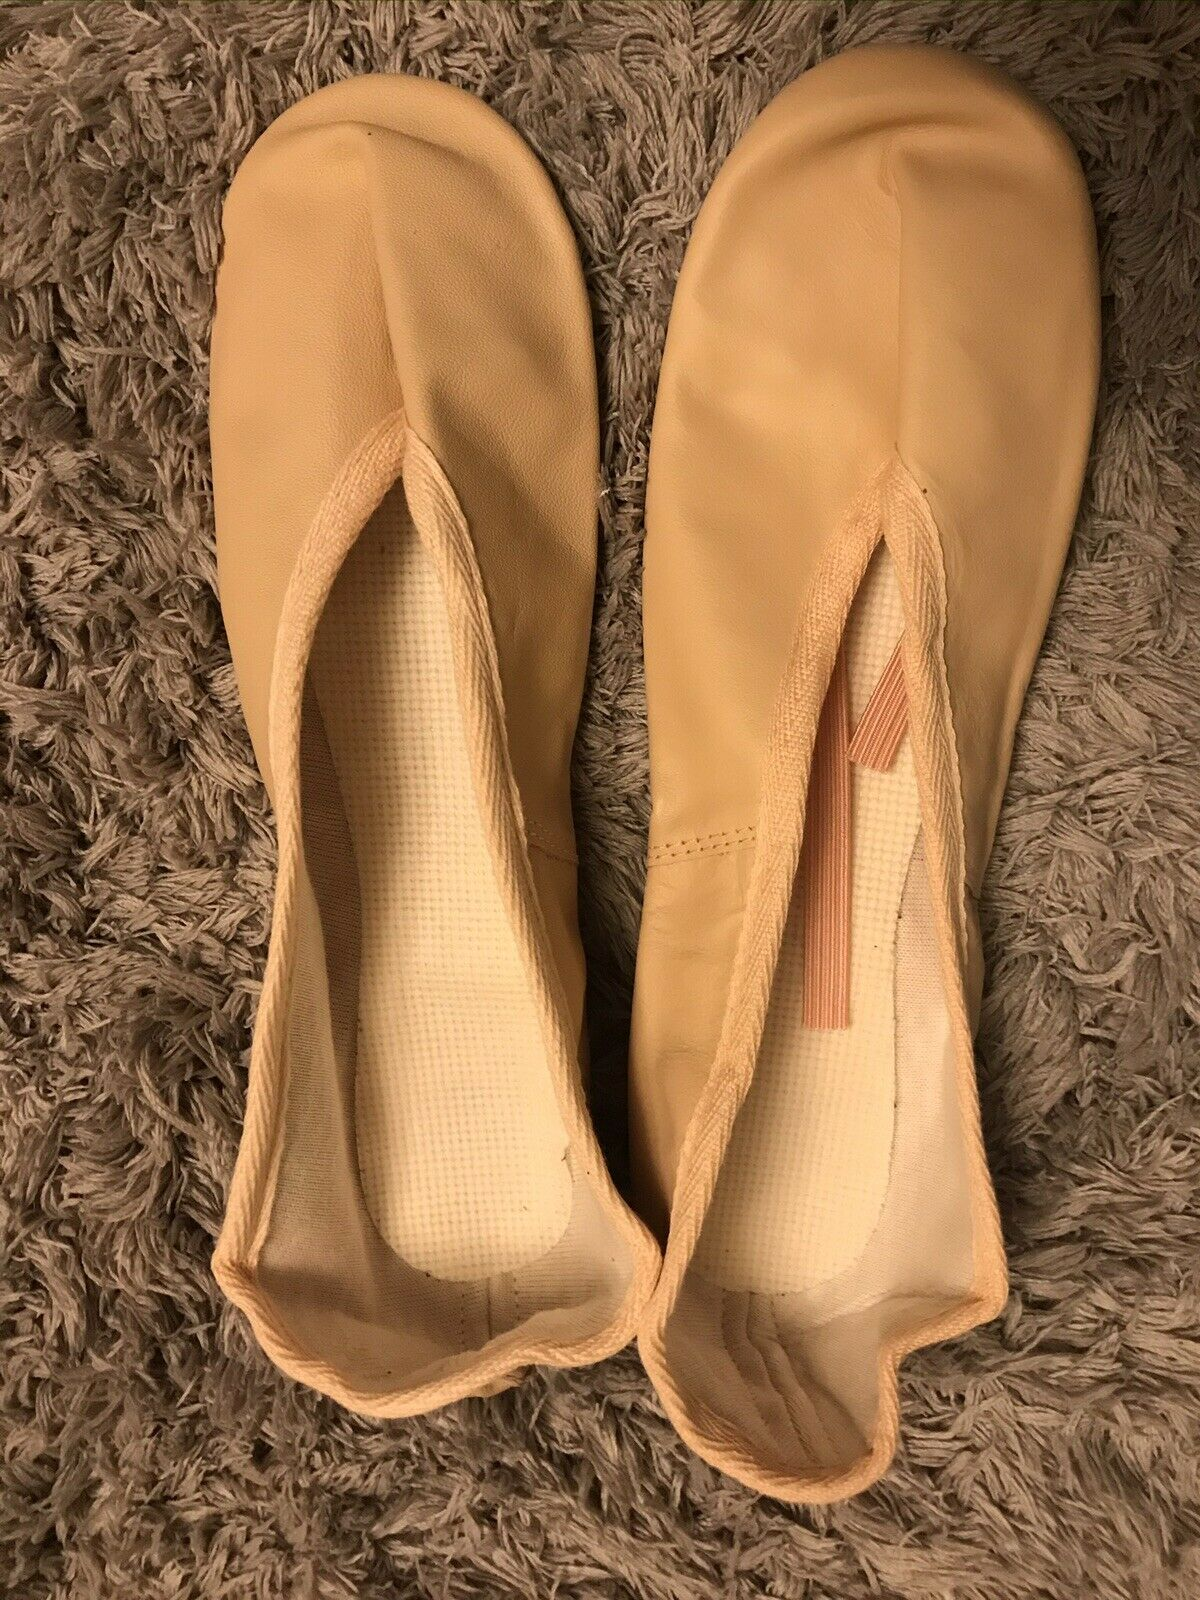 Dance Gear Direct Pink Leather Ballet Shoes Size 6